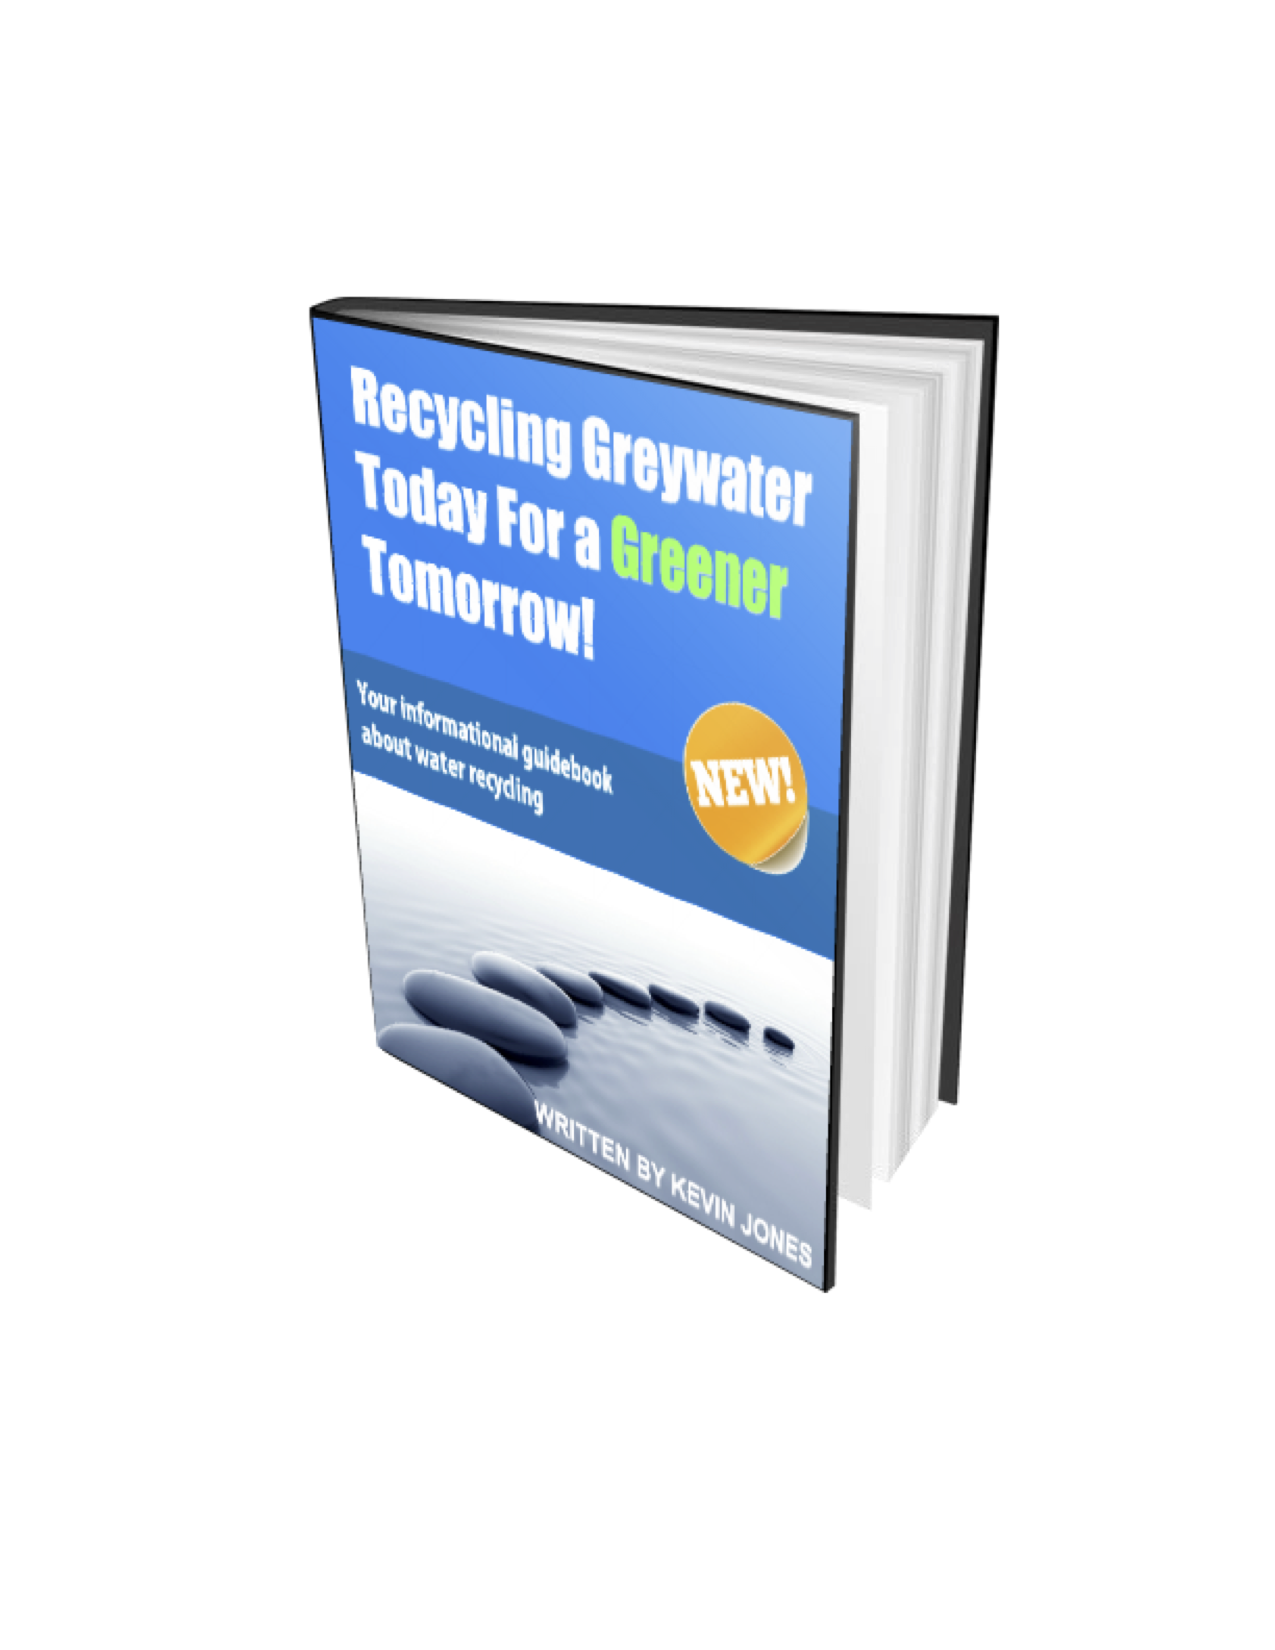 eBook: Recycling Greywater Today For a Greener Tomorrow product link: https://payhip.com/b/40pk $5